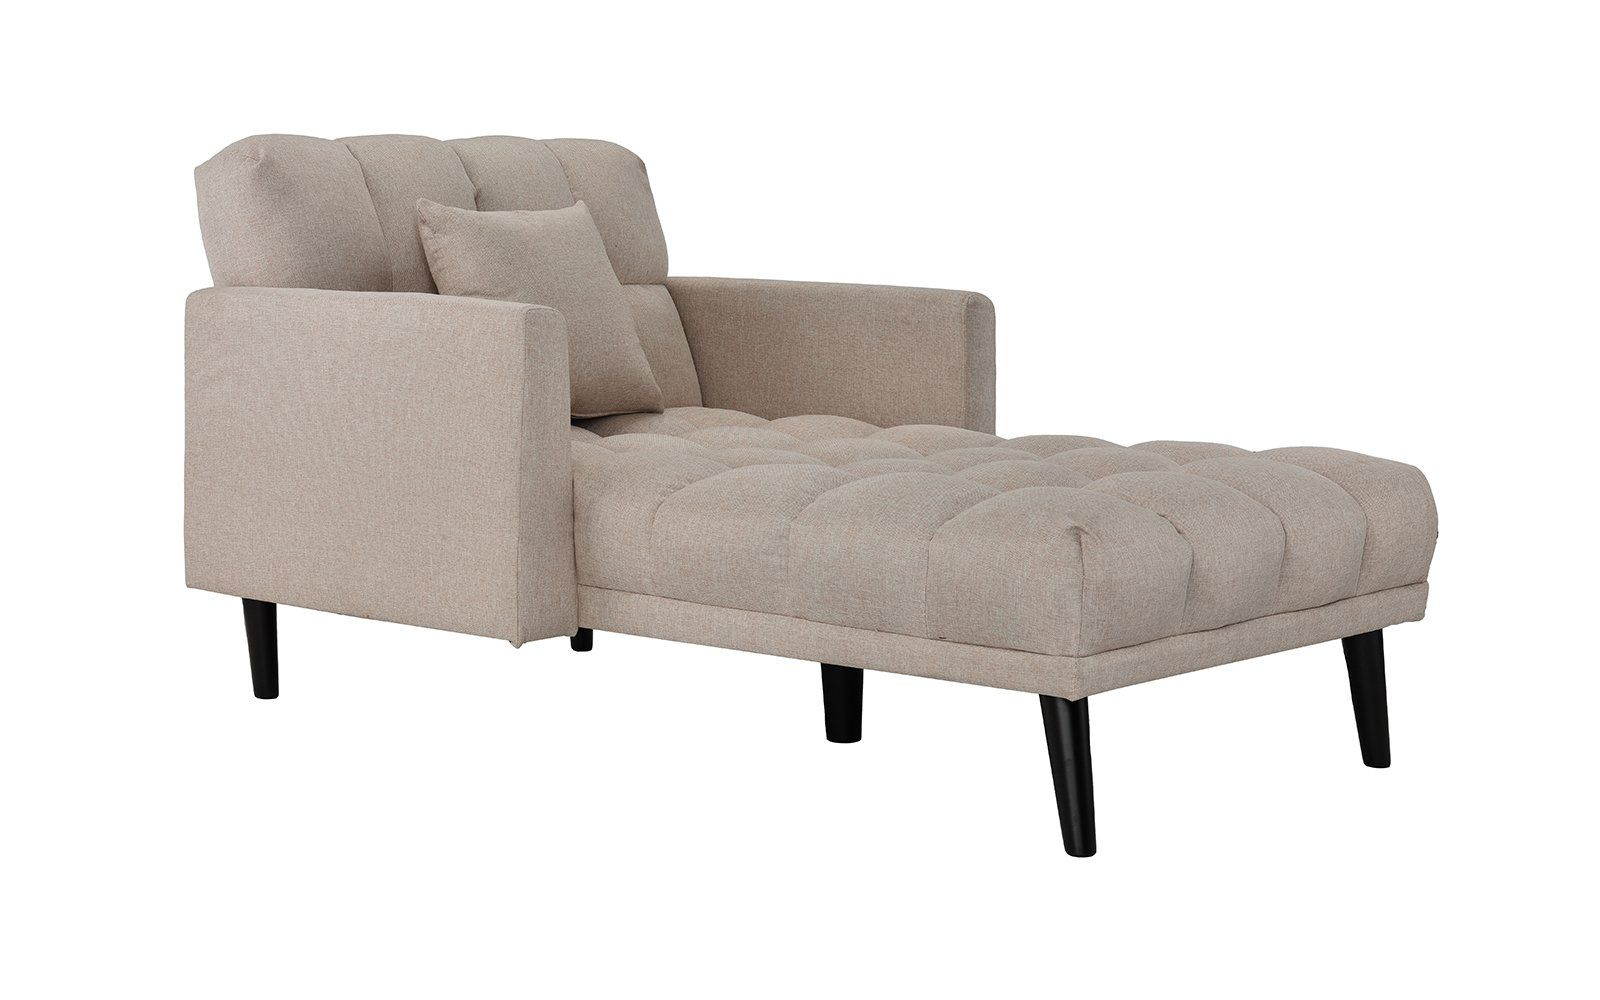 Ellery Modern Chaise Lounge Sleeper Chaise Lounge Mid Century Modern Chaise Lounge Modern Chaise Lounge